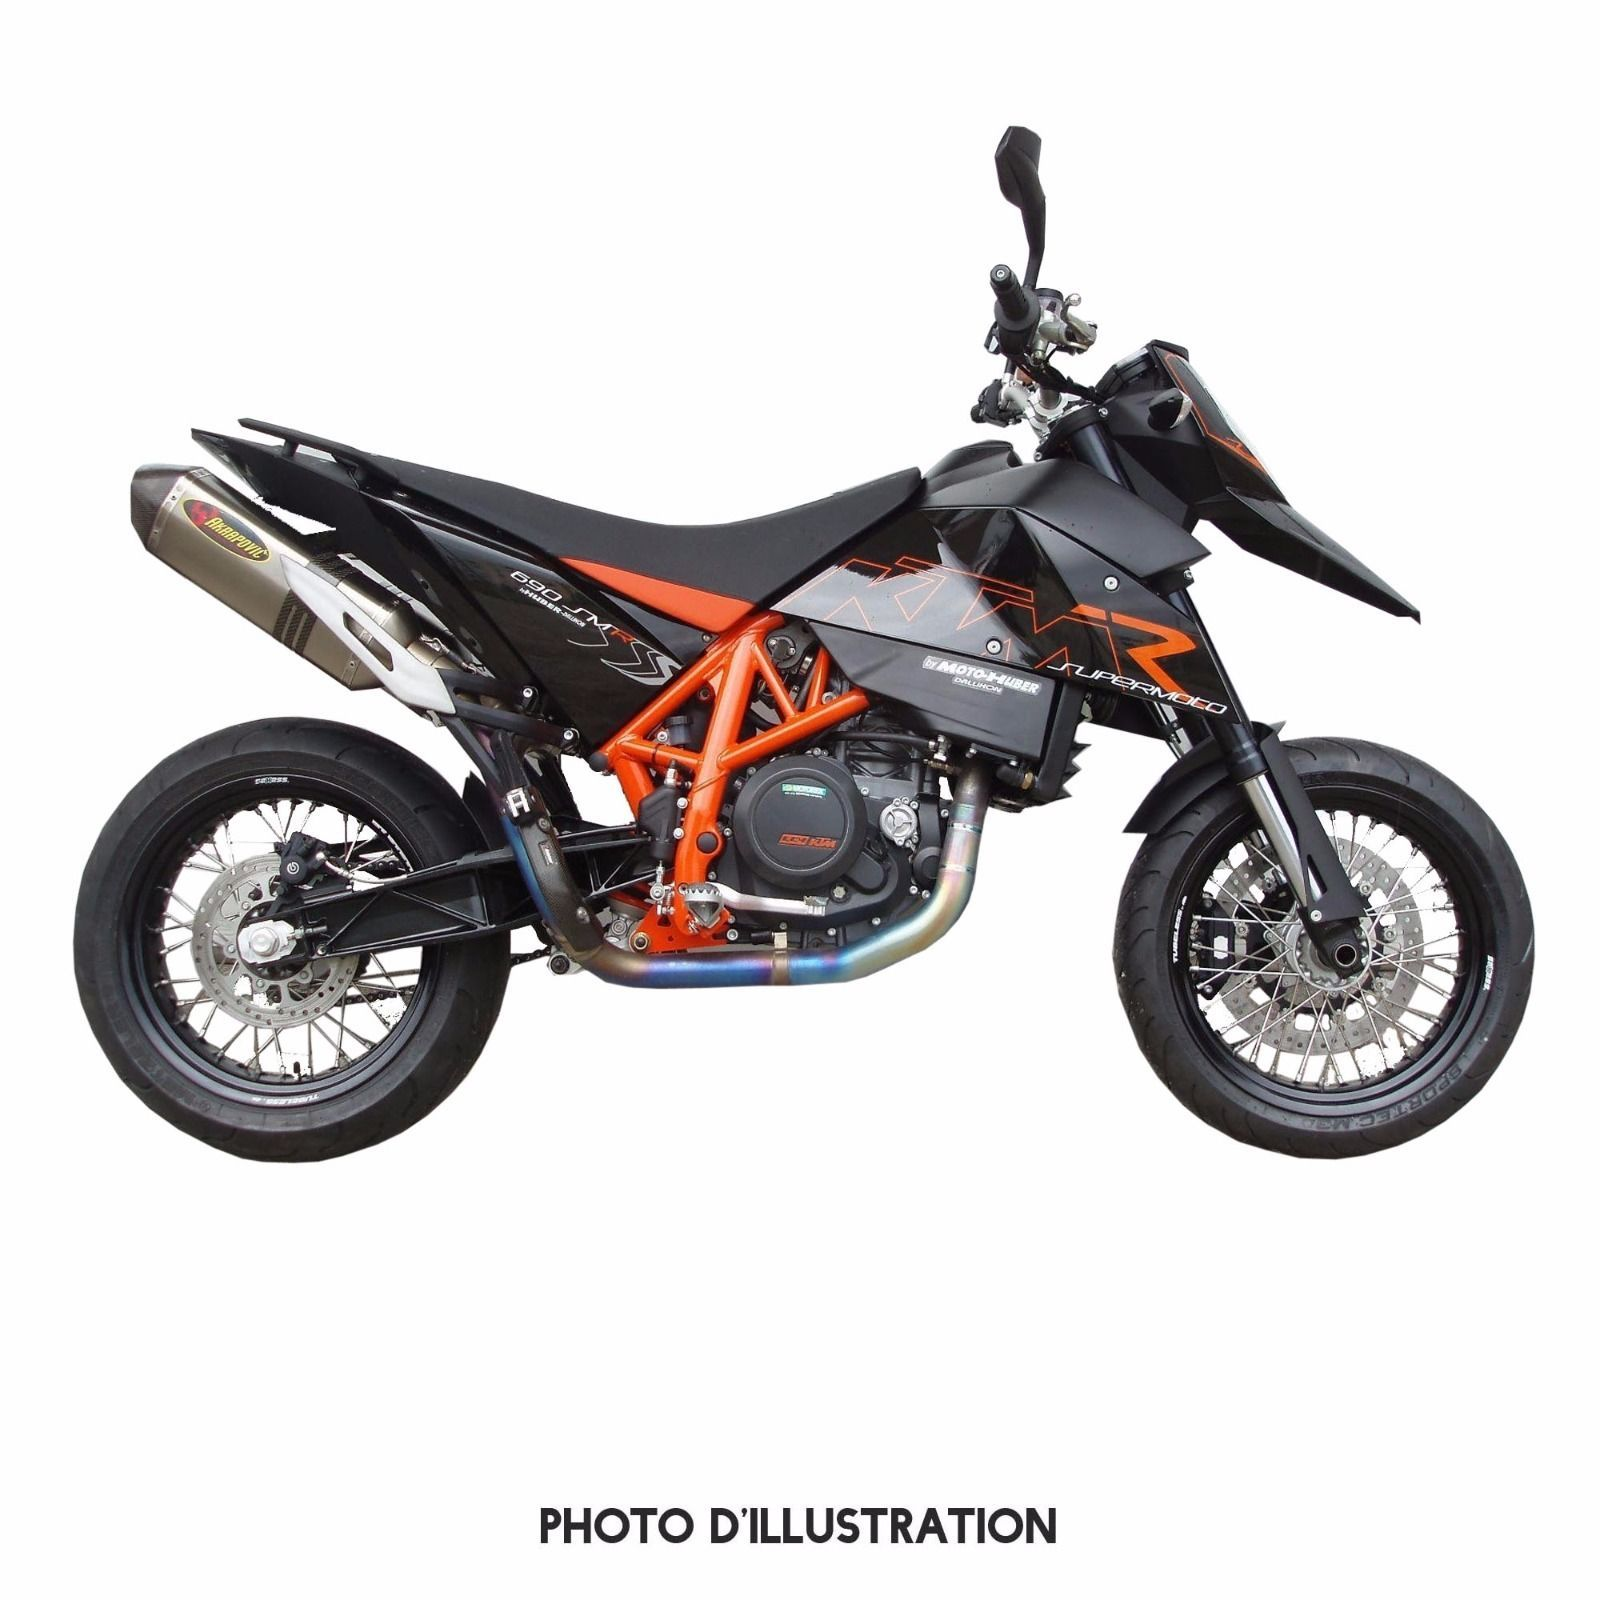 ligne akrapovic full exhaust system ktm 690 sm smr. Black Bedroom Furniture Sets. Home Design Ideas